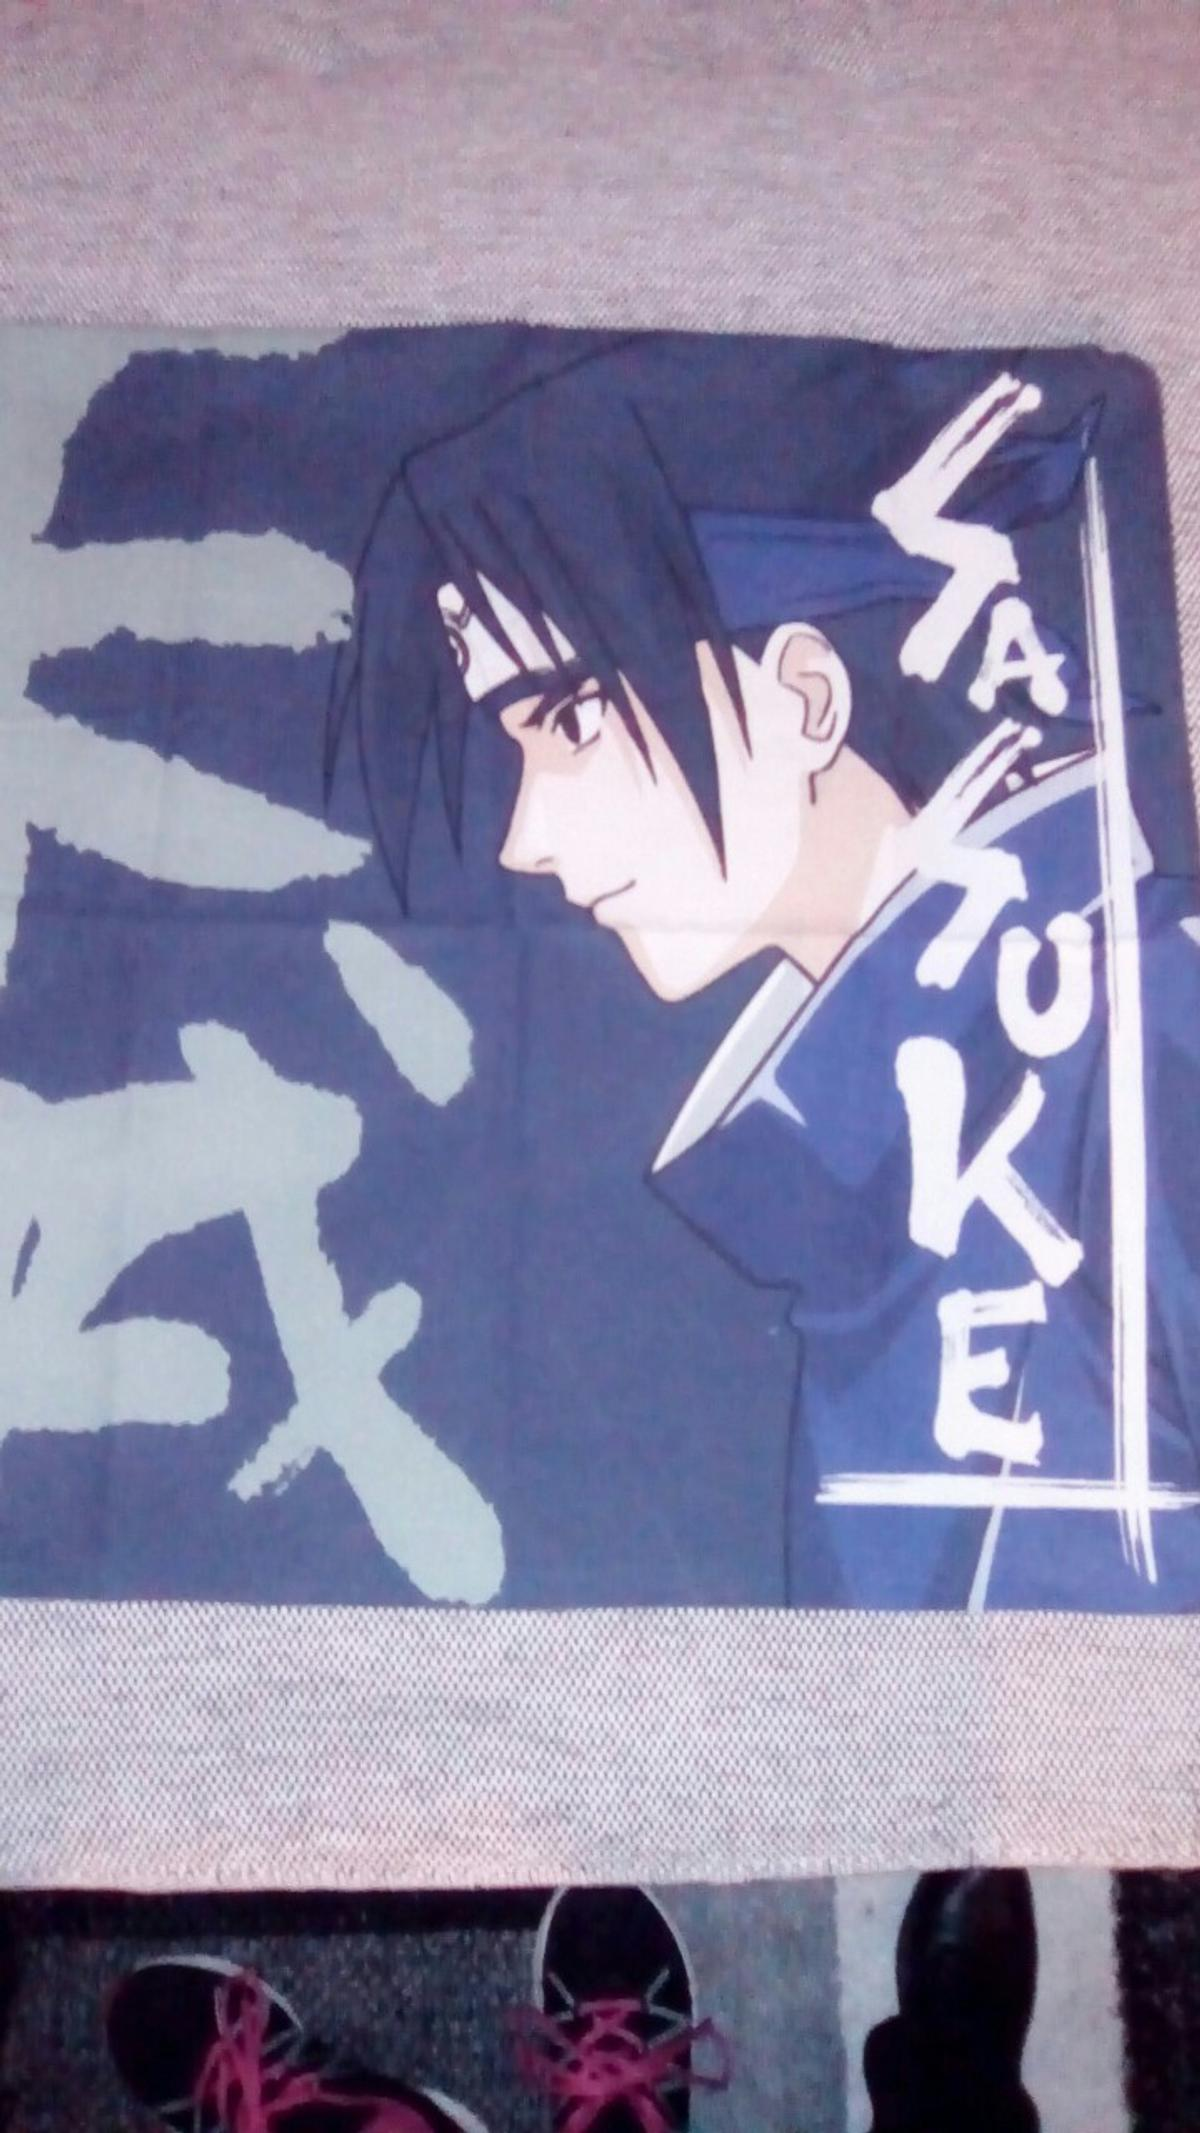 Naruto Sasuke Bettwäsche In 24558 Henstedt Ulzburg For 20 00 For Sale Shpock